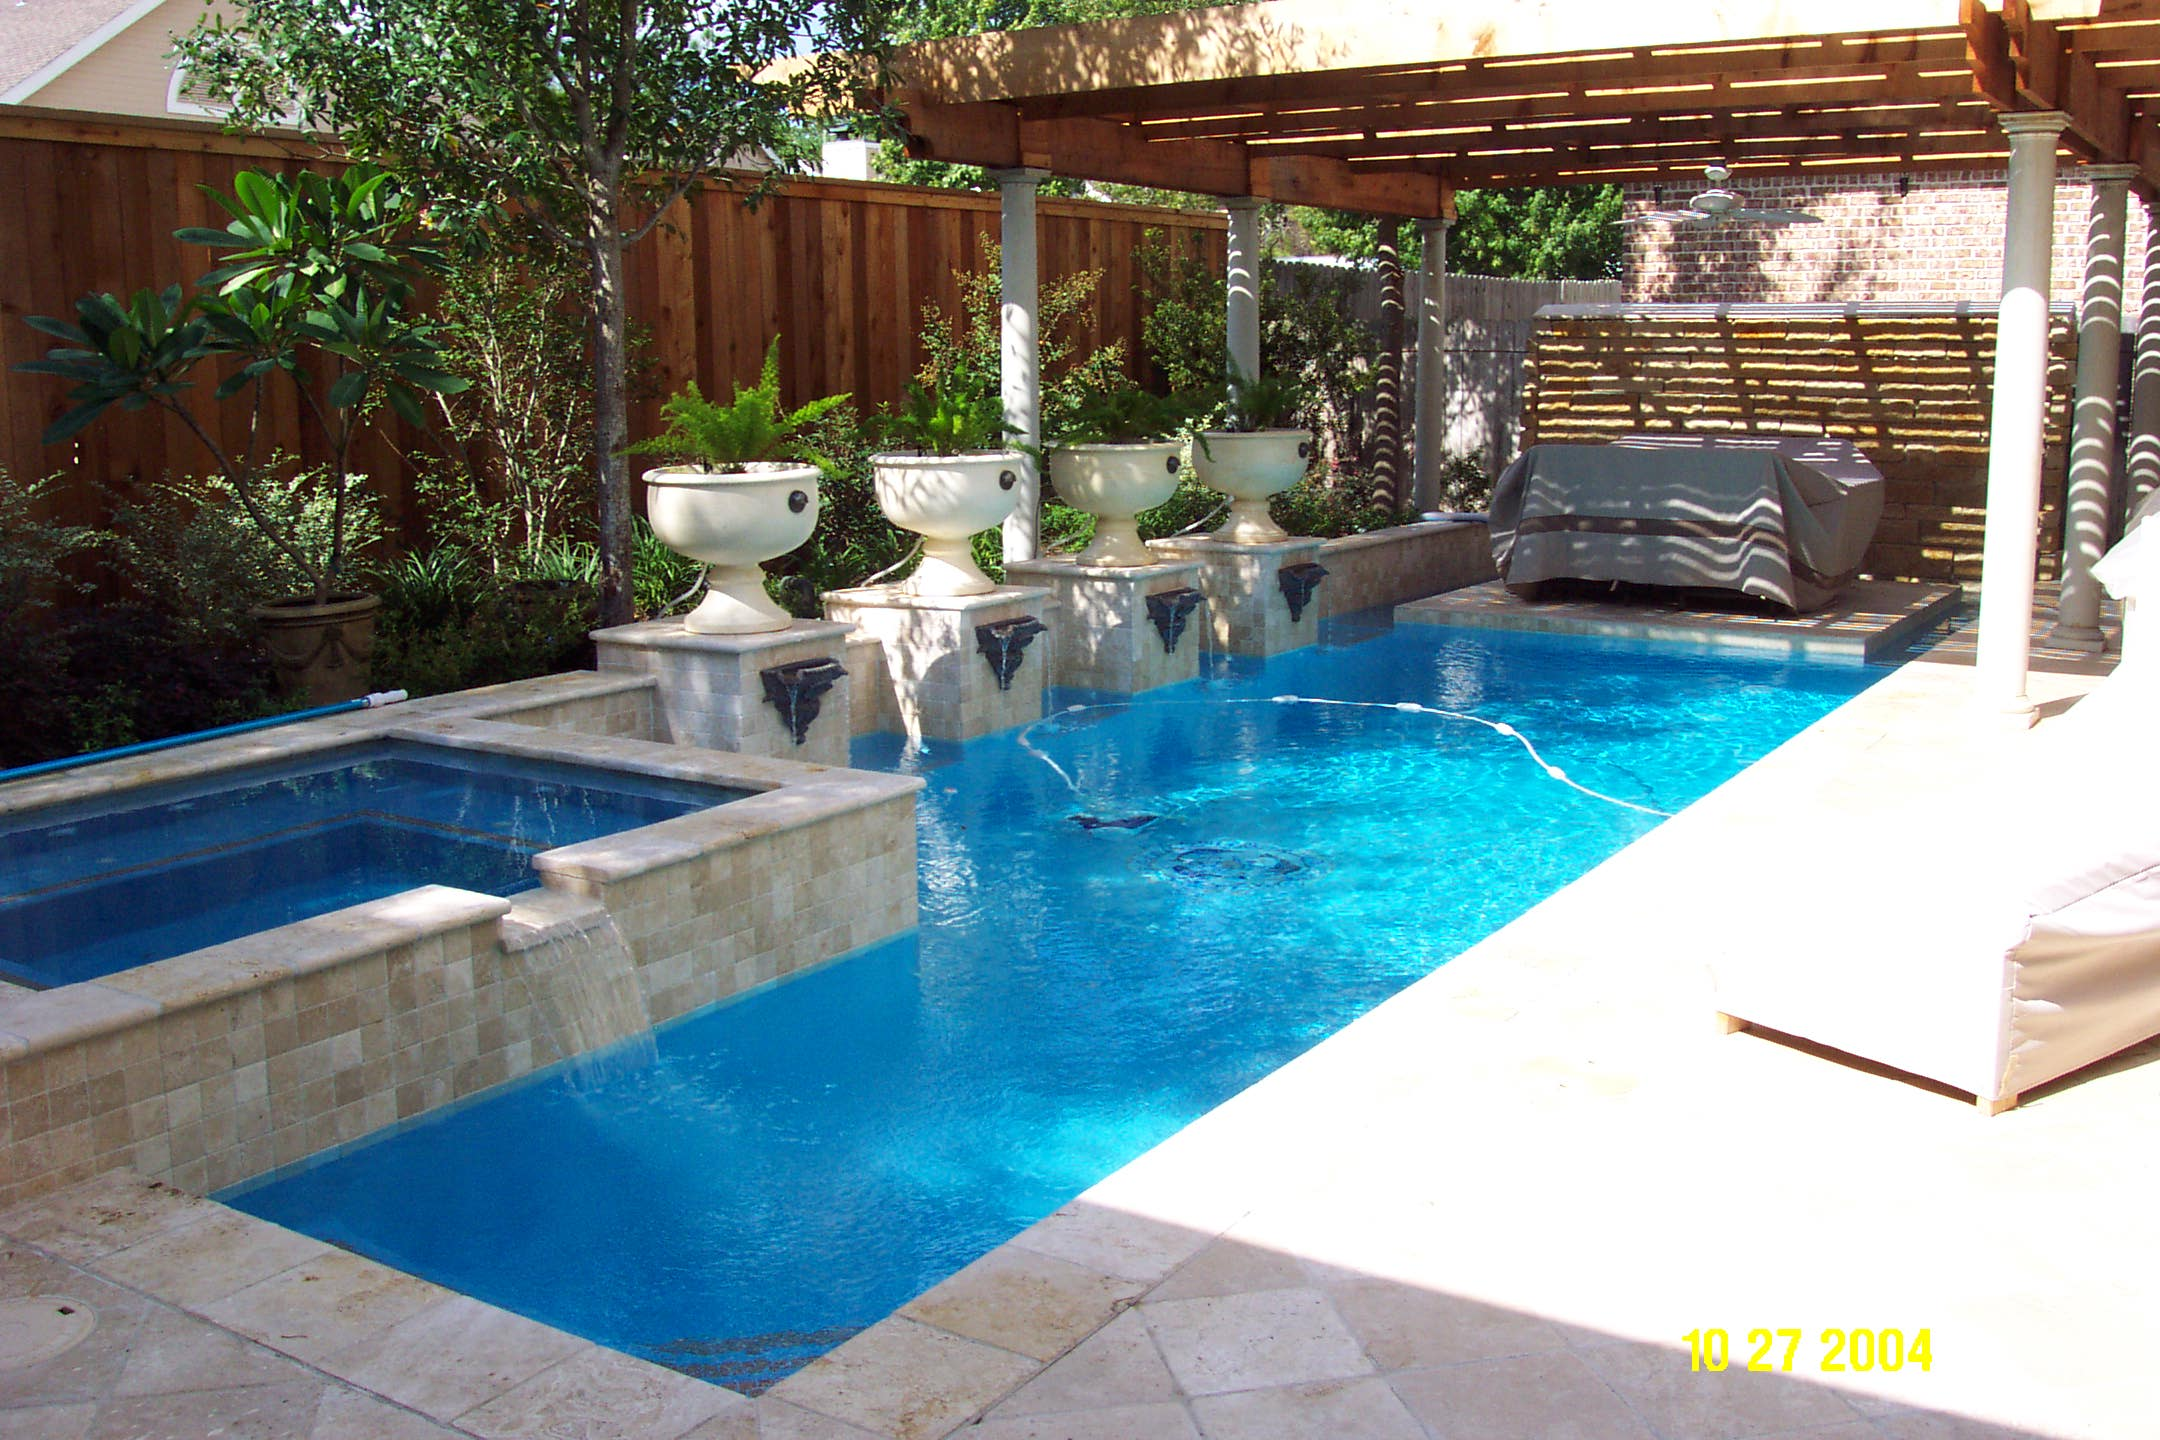 swimming pool designs for small yards - Design Decoration